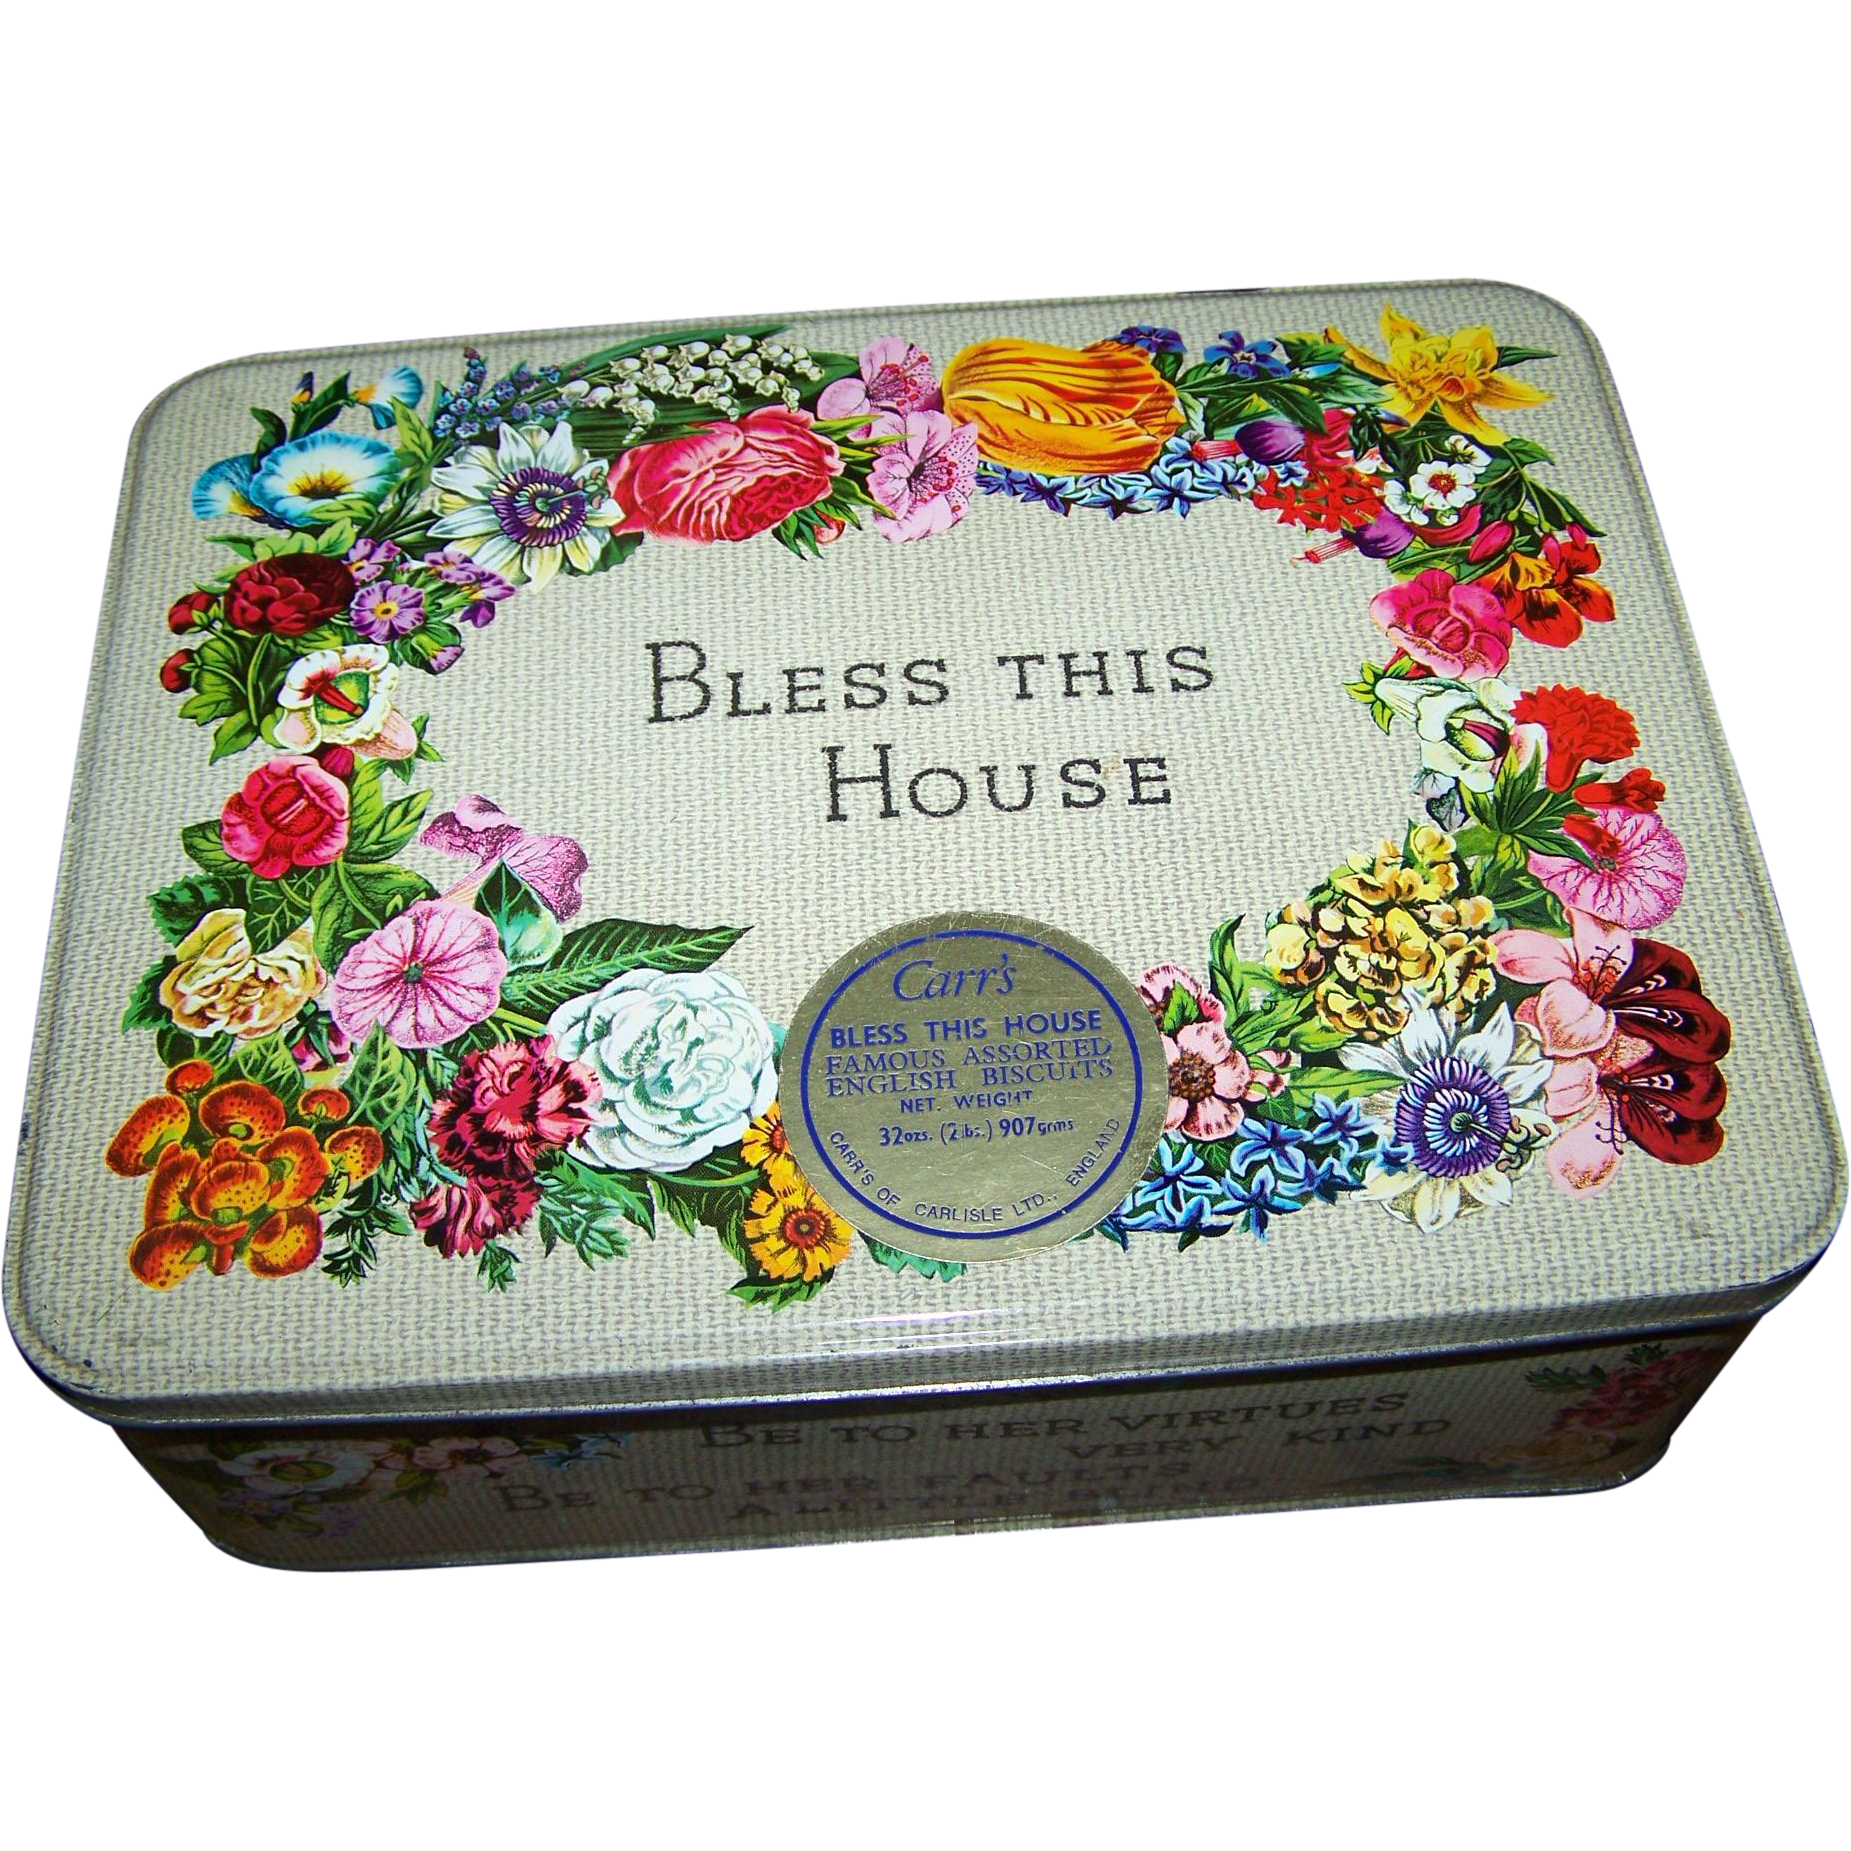 Advertising tin box bless this house carr 39 s of carlisle assorted from victoriasjems on ruby lane Bless home furniture outlet